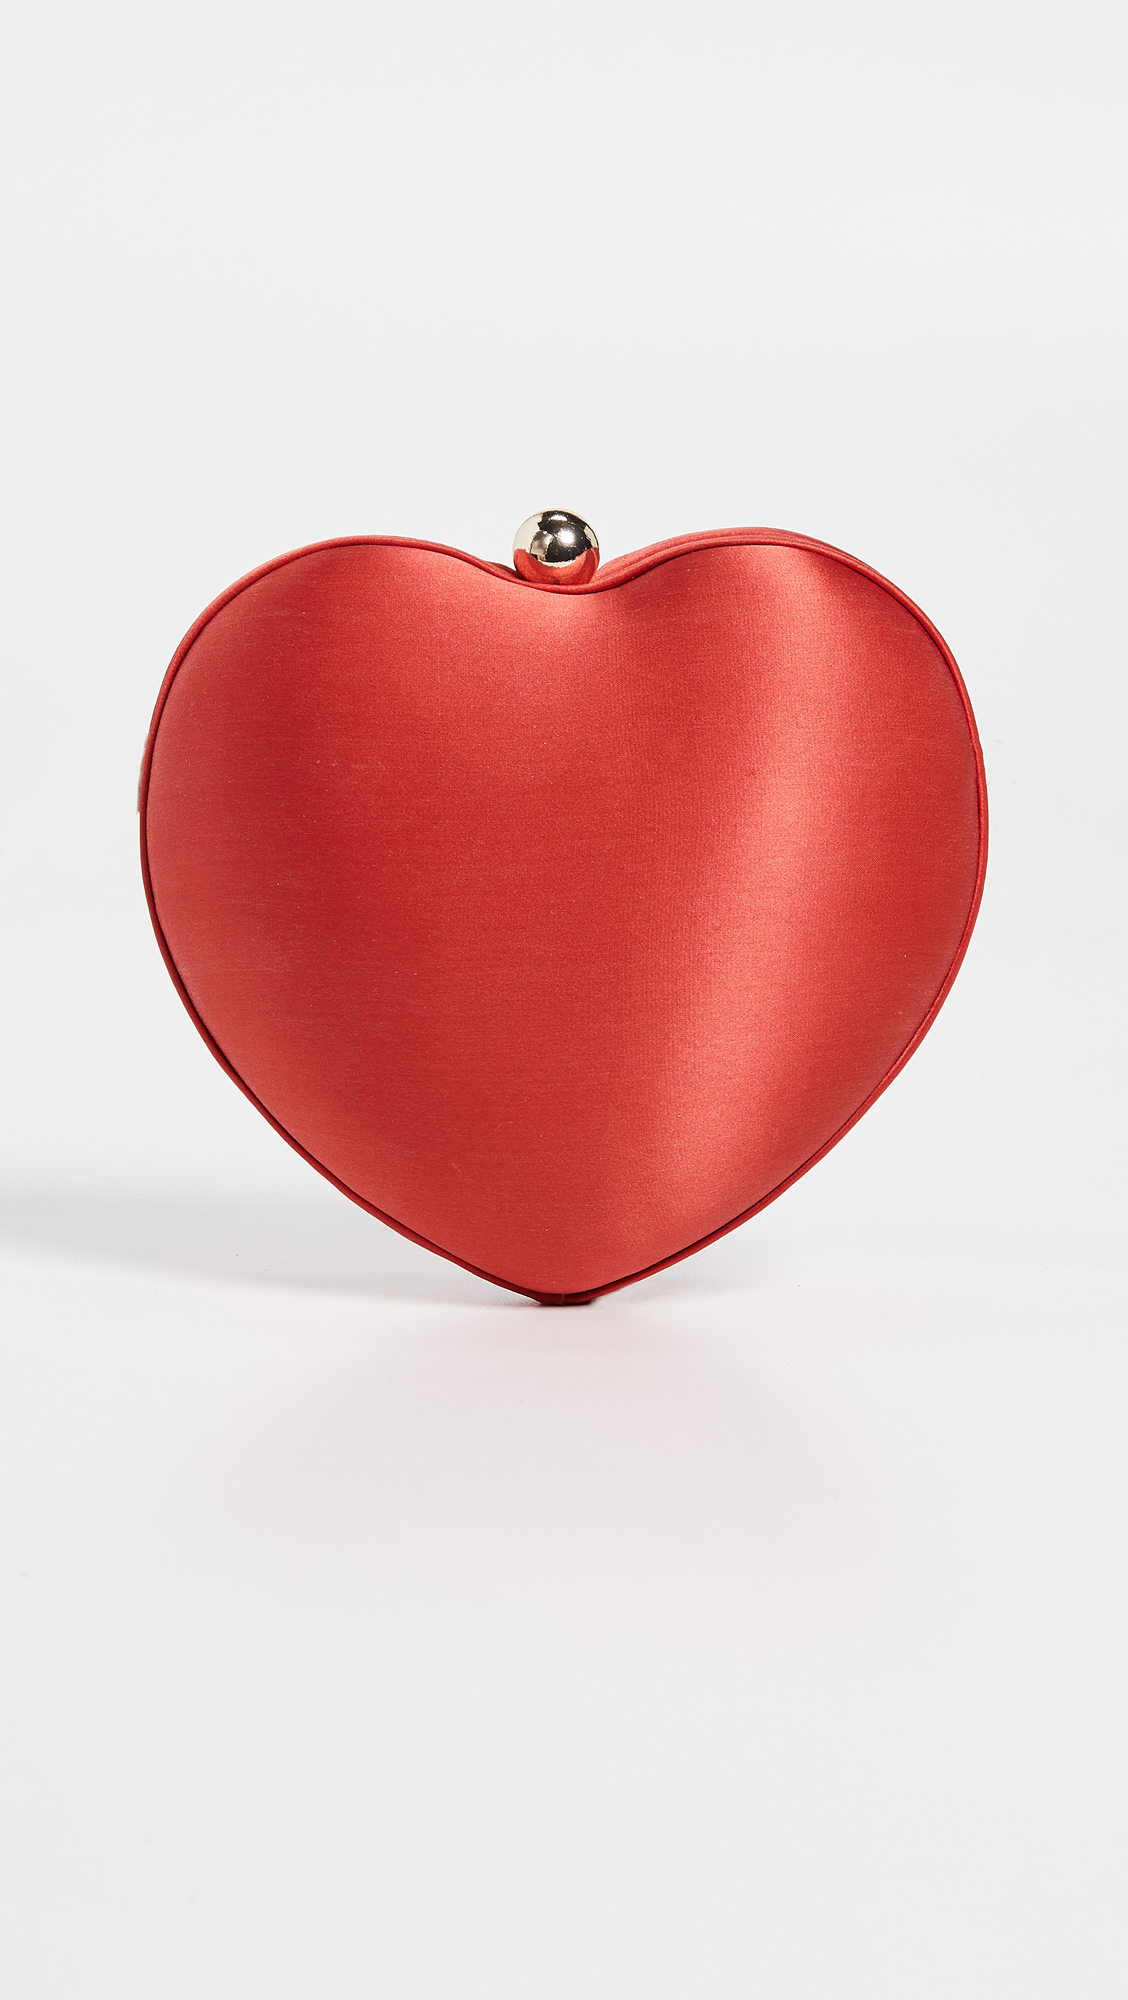 Heart Shaped Clutch